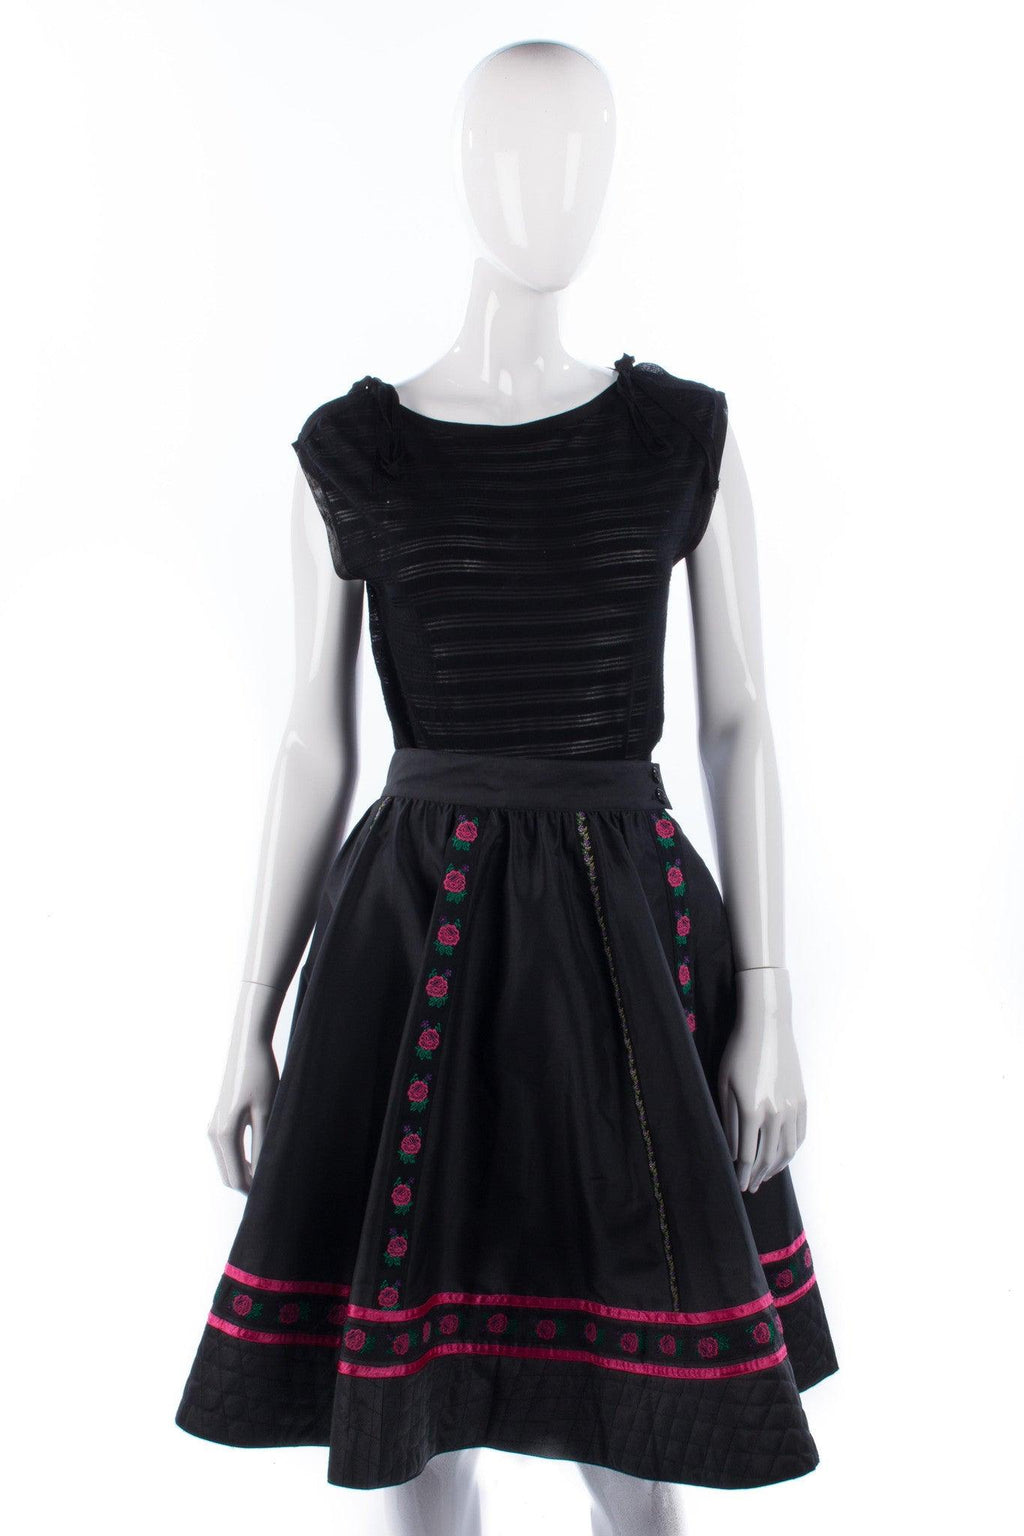 Designer vintage Mondi black full skirt